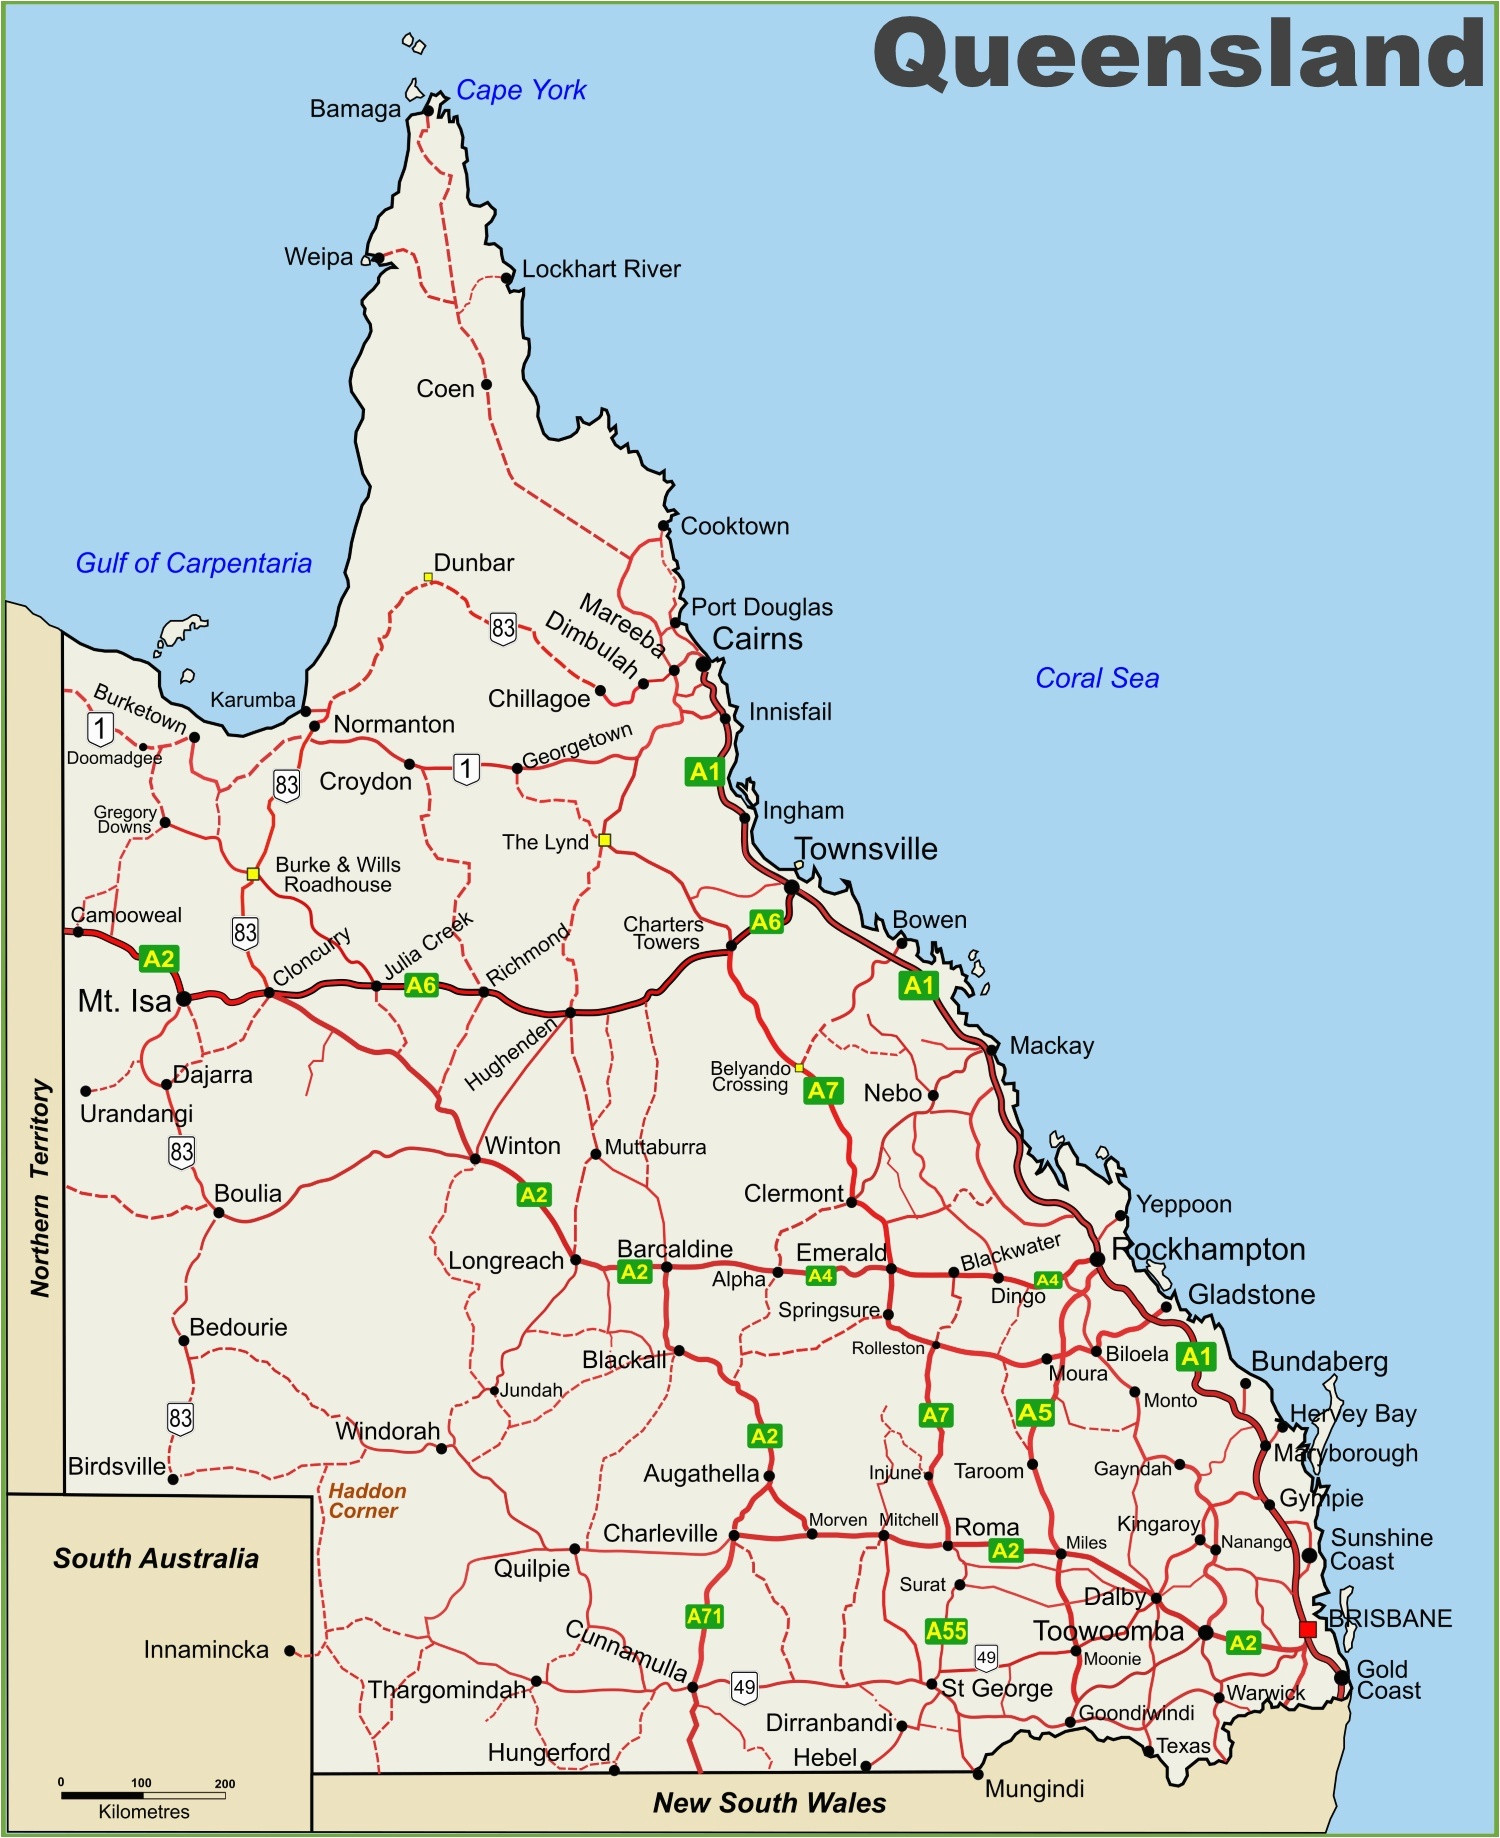 Download Queensland Australia Map Map Gold Coast Queensland Australia Queensland Australia Map 8 Highway